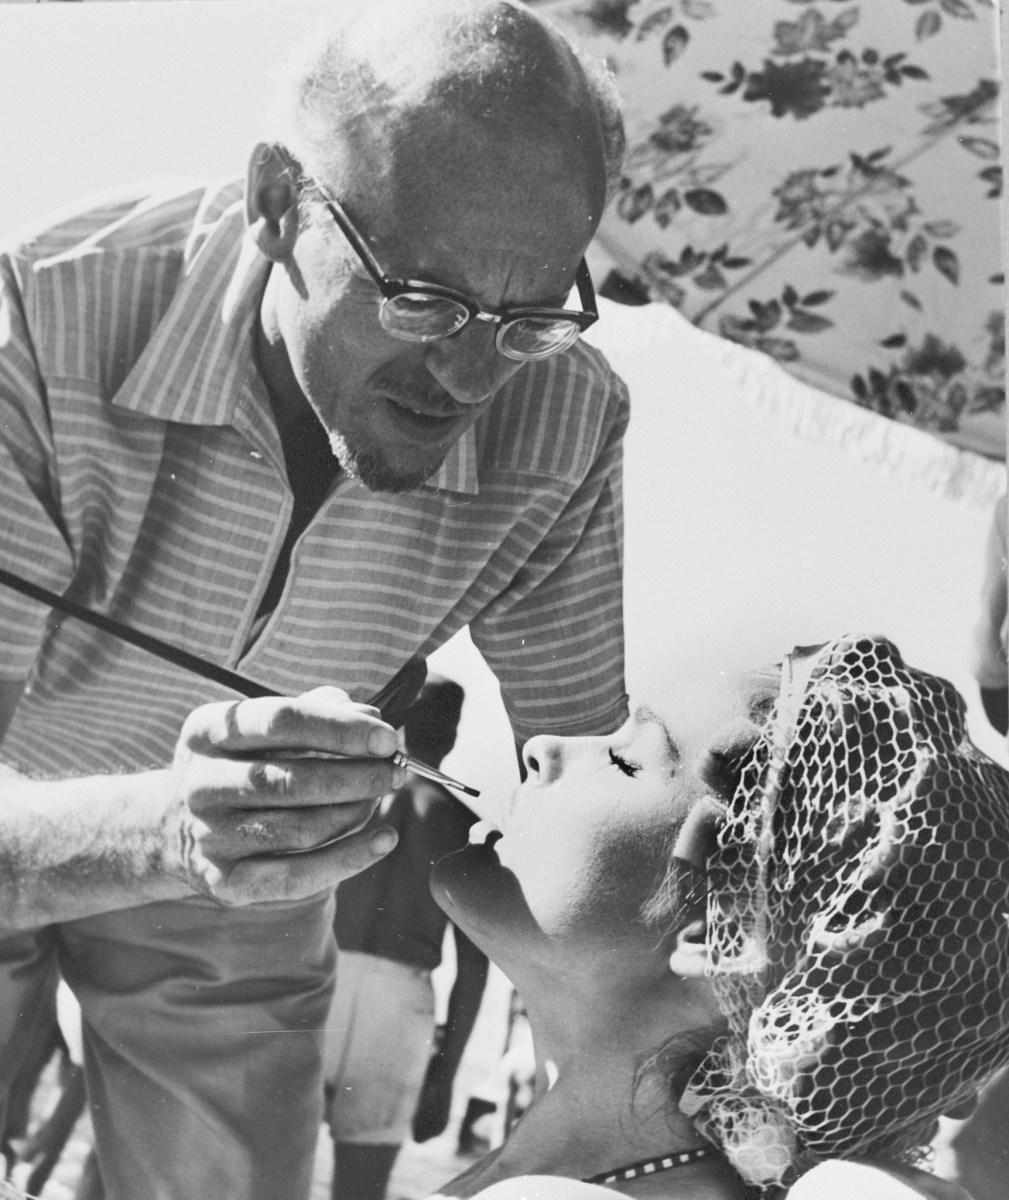 John & Ursula : Dr. No (1962) Behind the Scenes